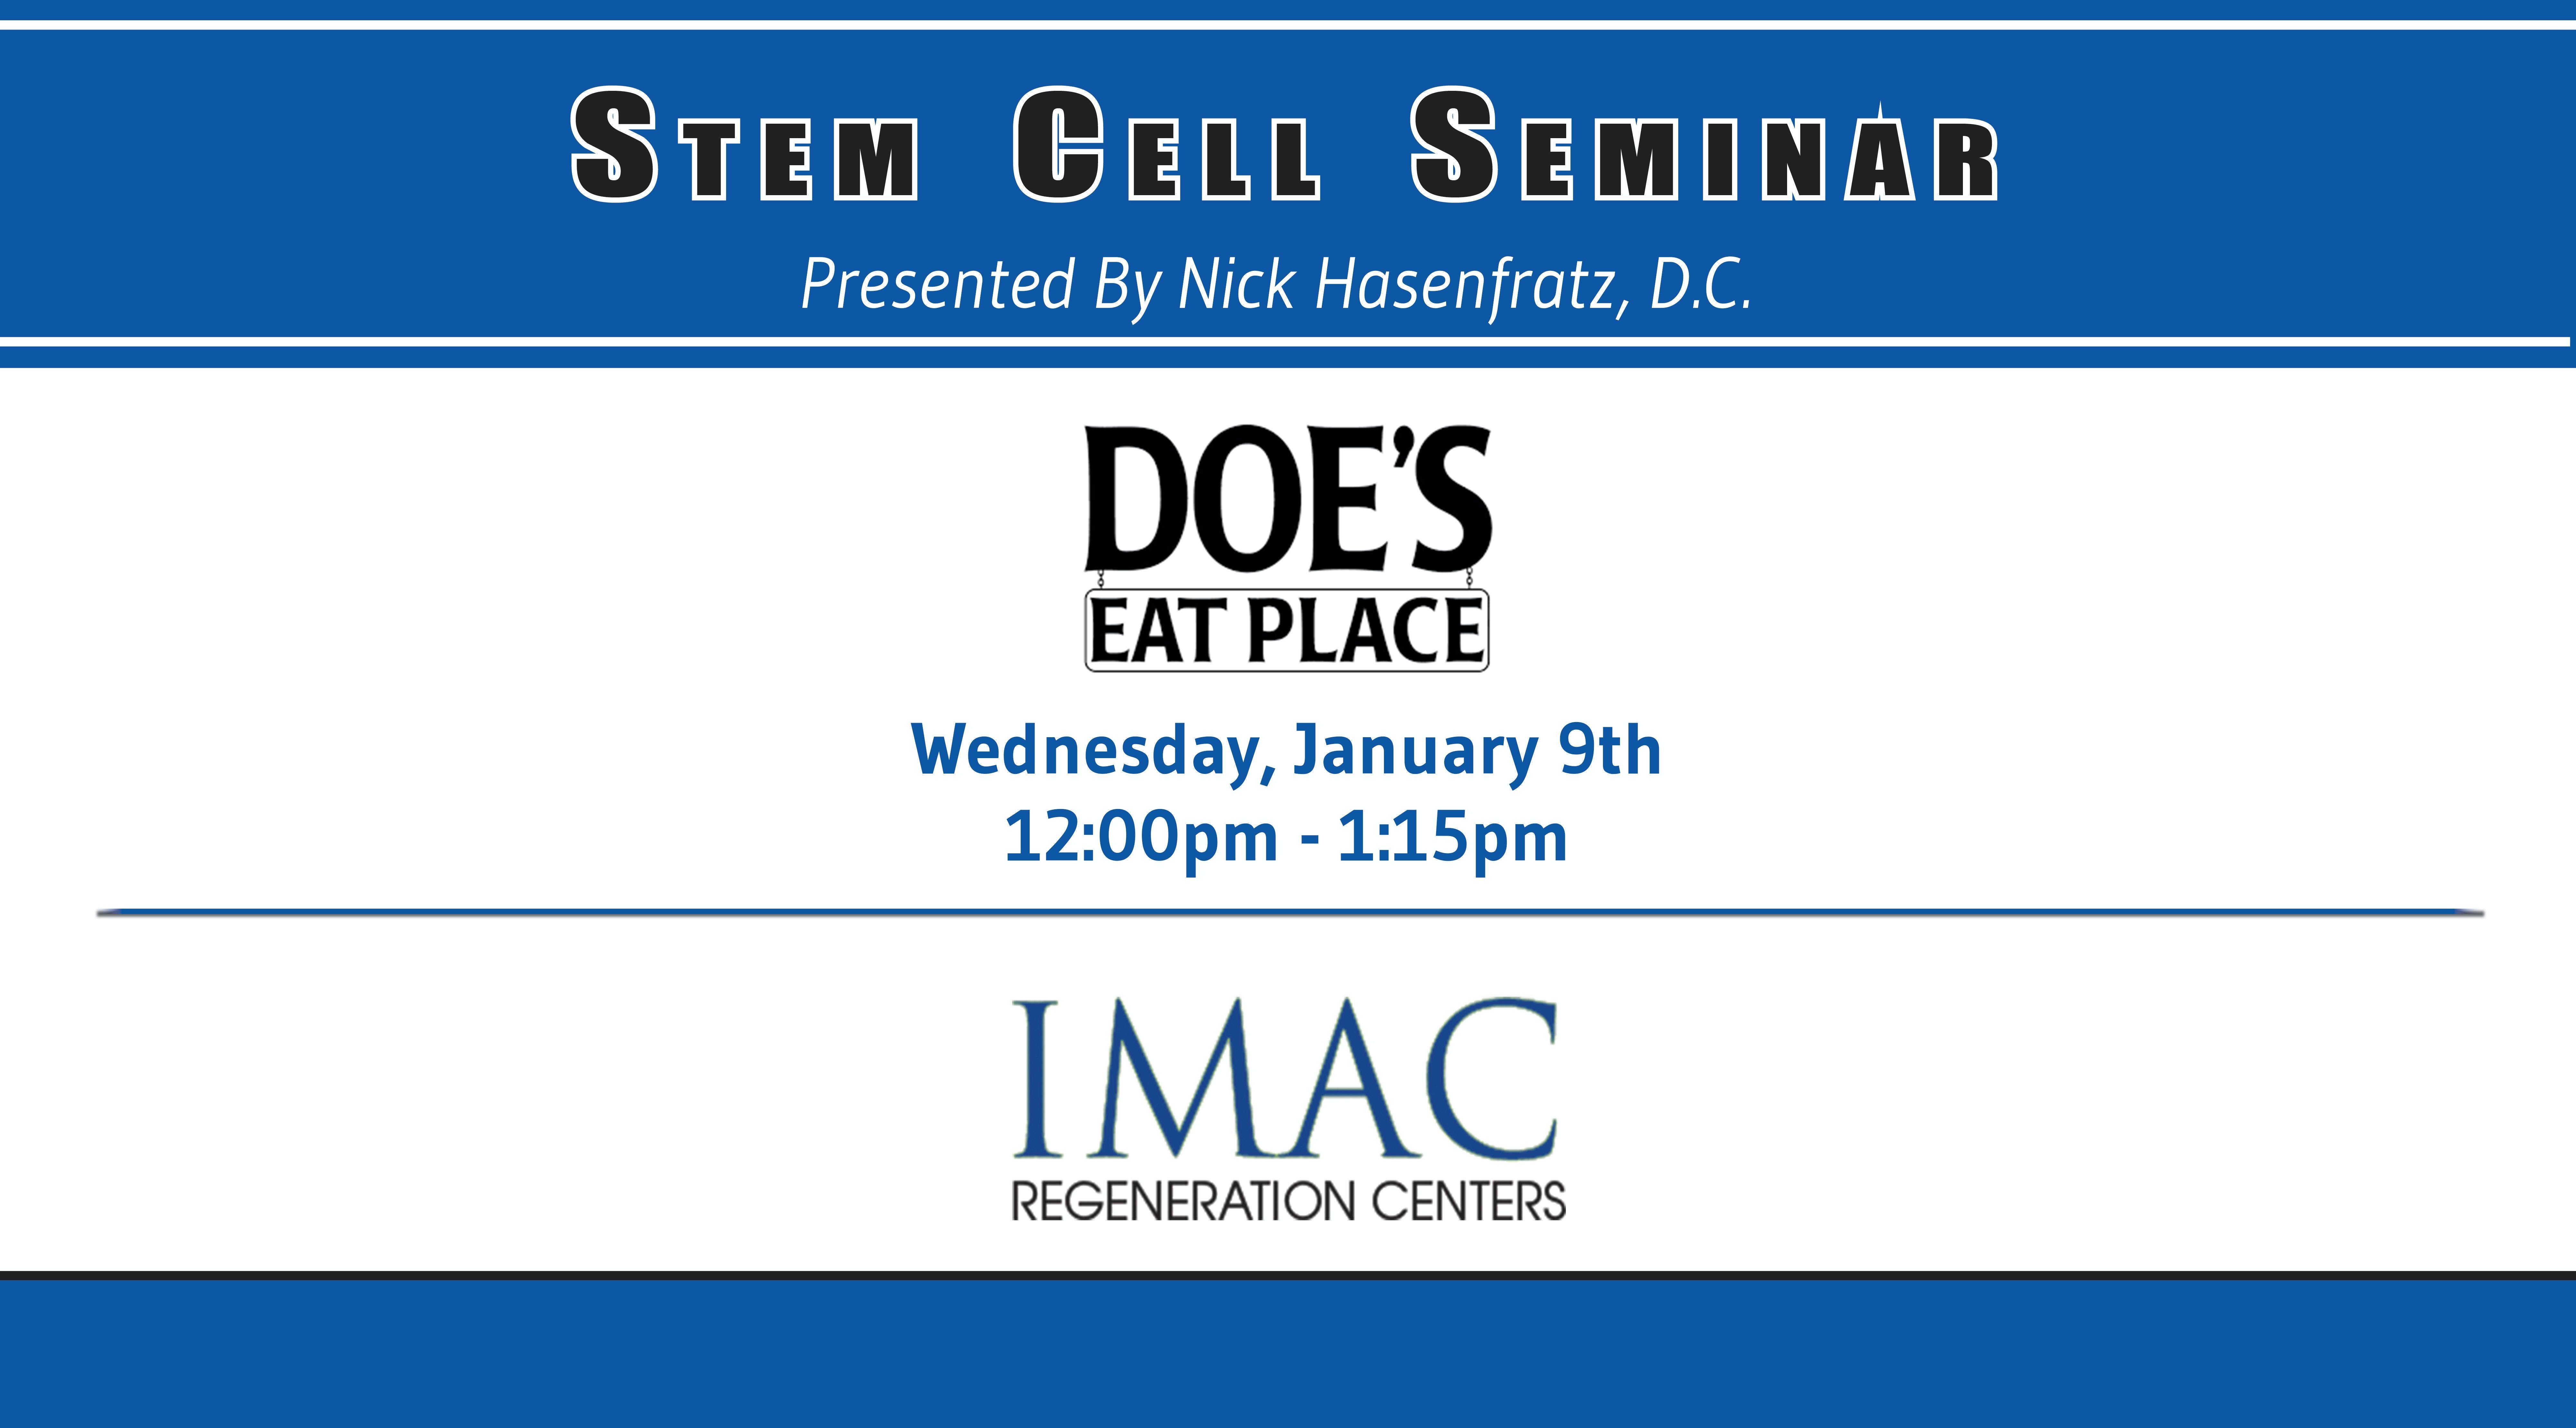 IMAC Regeneration Centers Stem Cell Seminar - Does Eat Place - 1/9